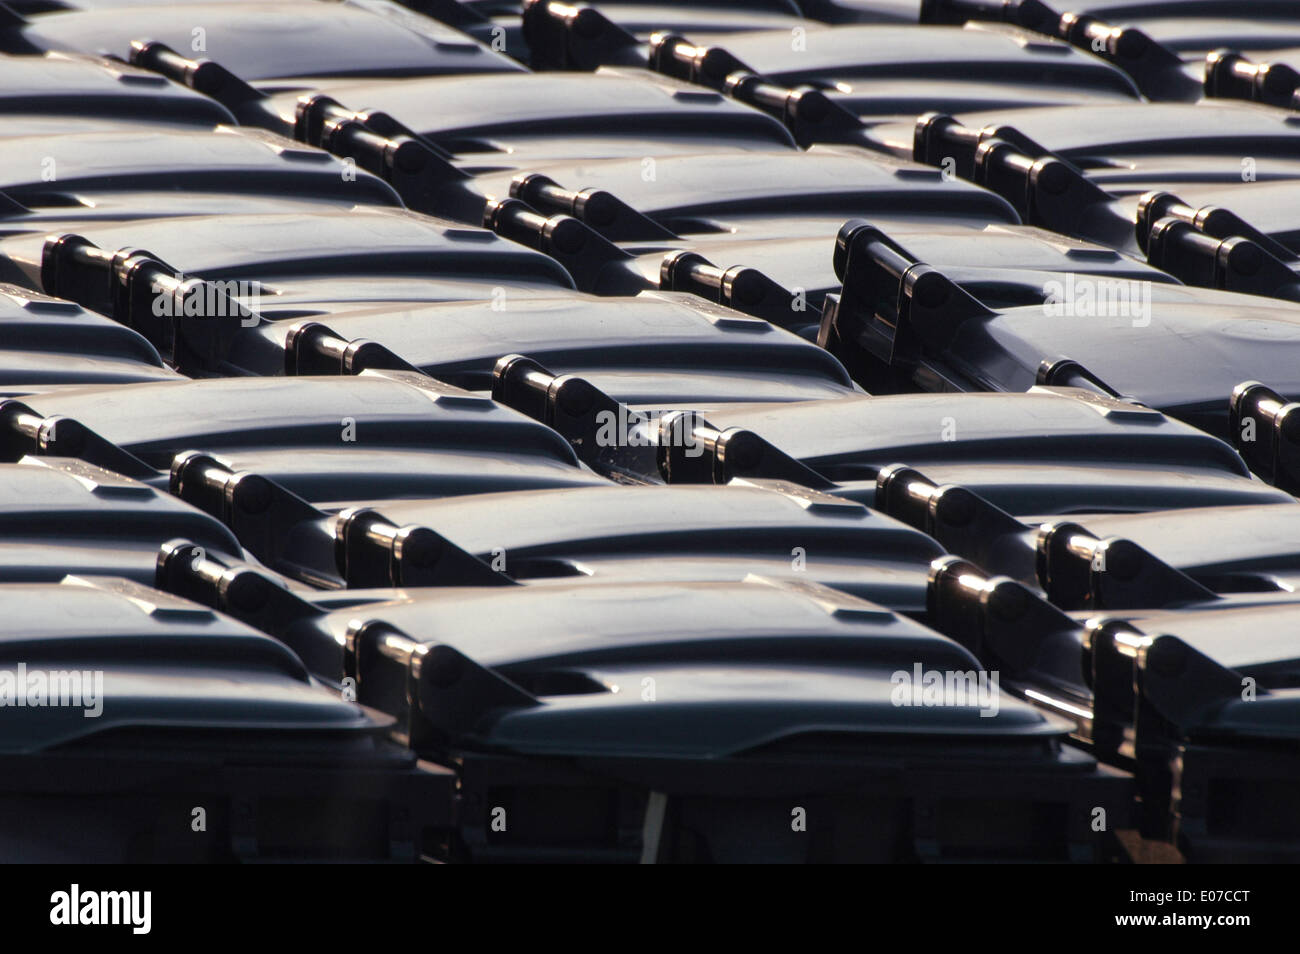 Berlin, Germany. 02nd May, 2009. Black dumpsters stand on the recycling facility of the Berlin city cleaning company - Stock Photo